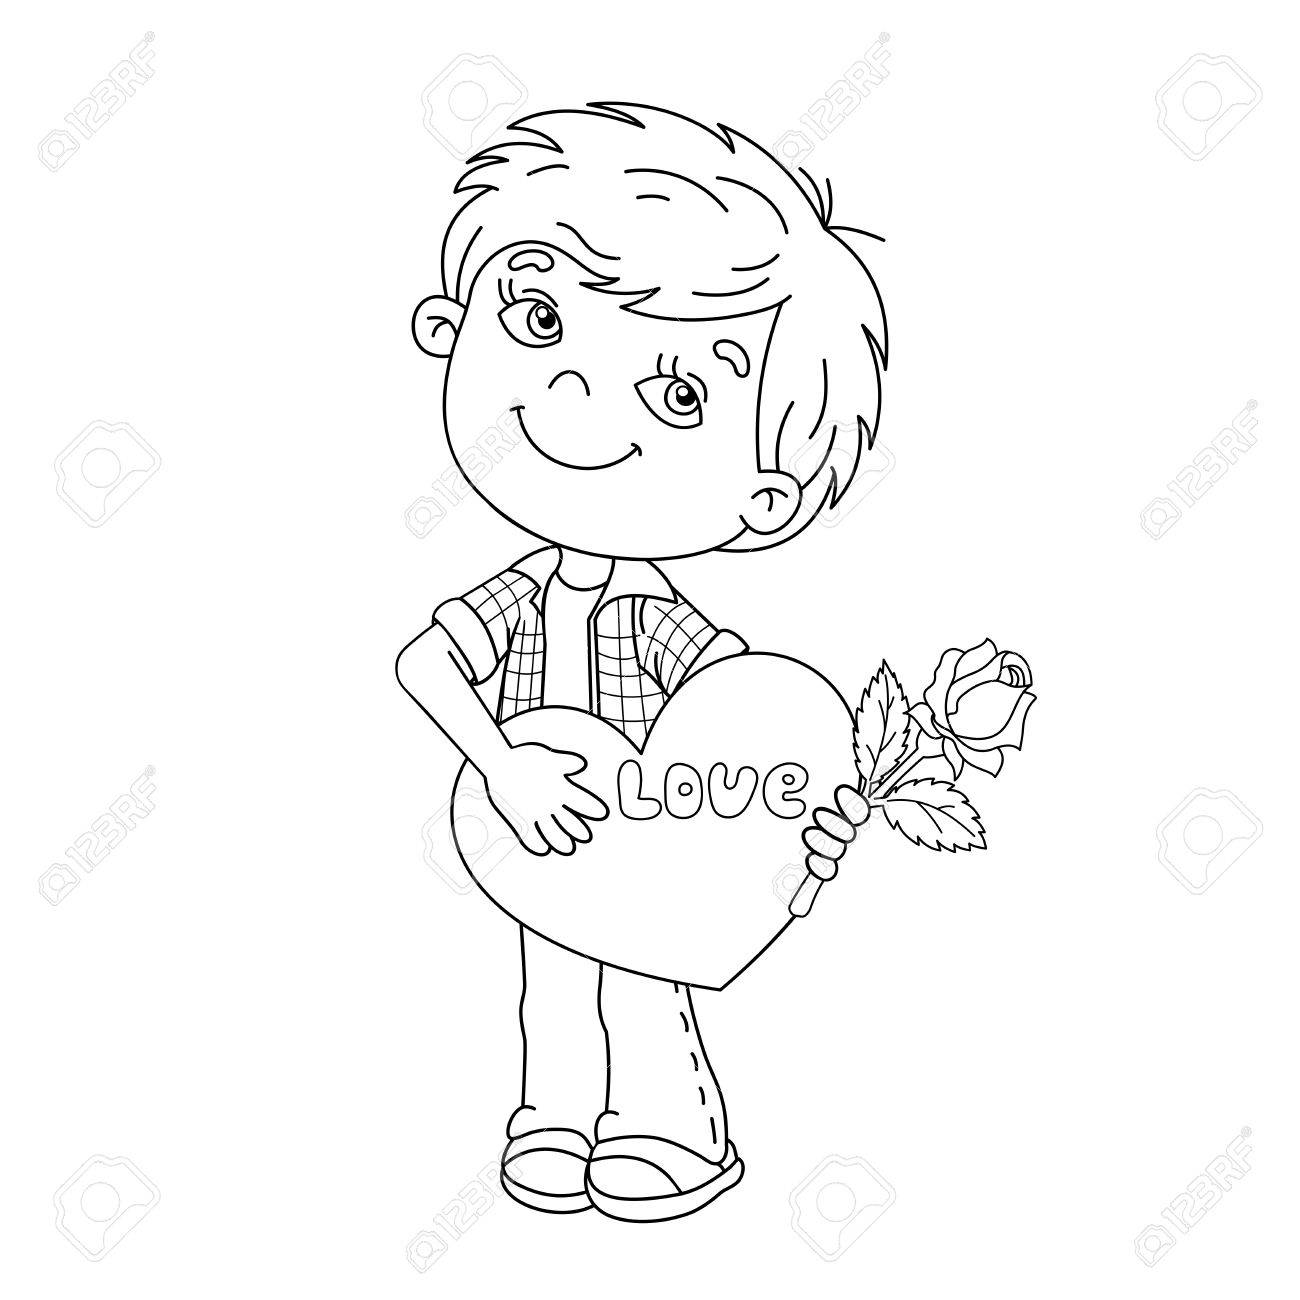 Coloring Page Outline Of Cartoon Boy With Rose In Hand Heart Book For